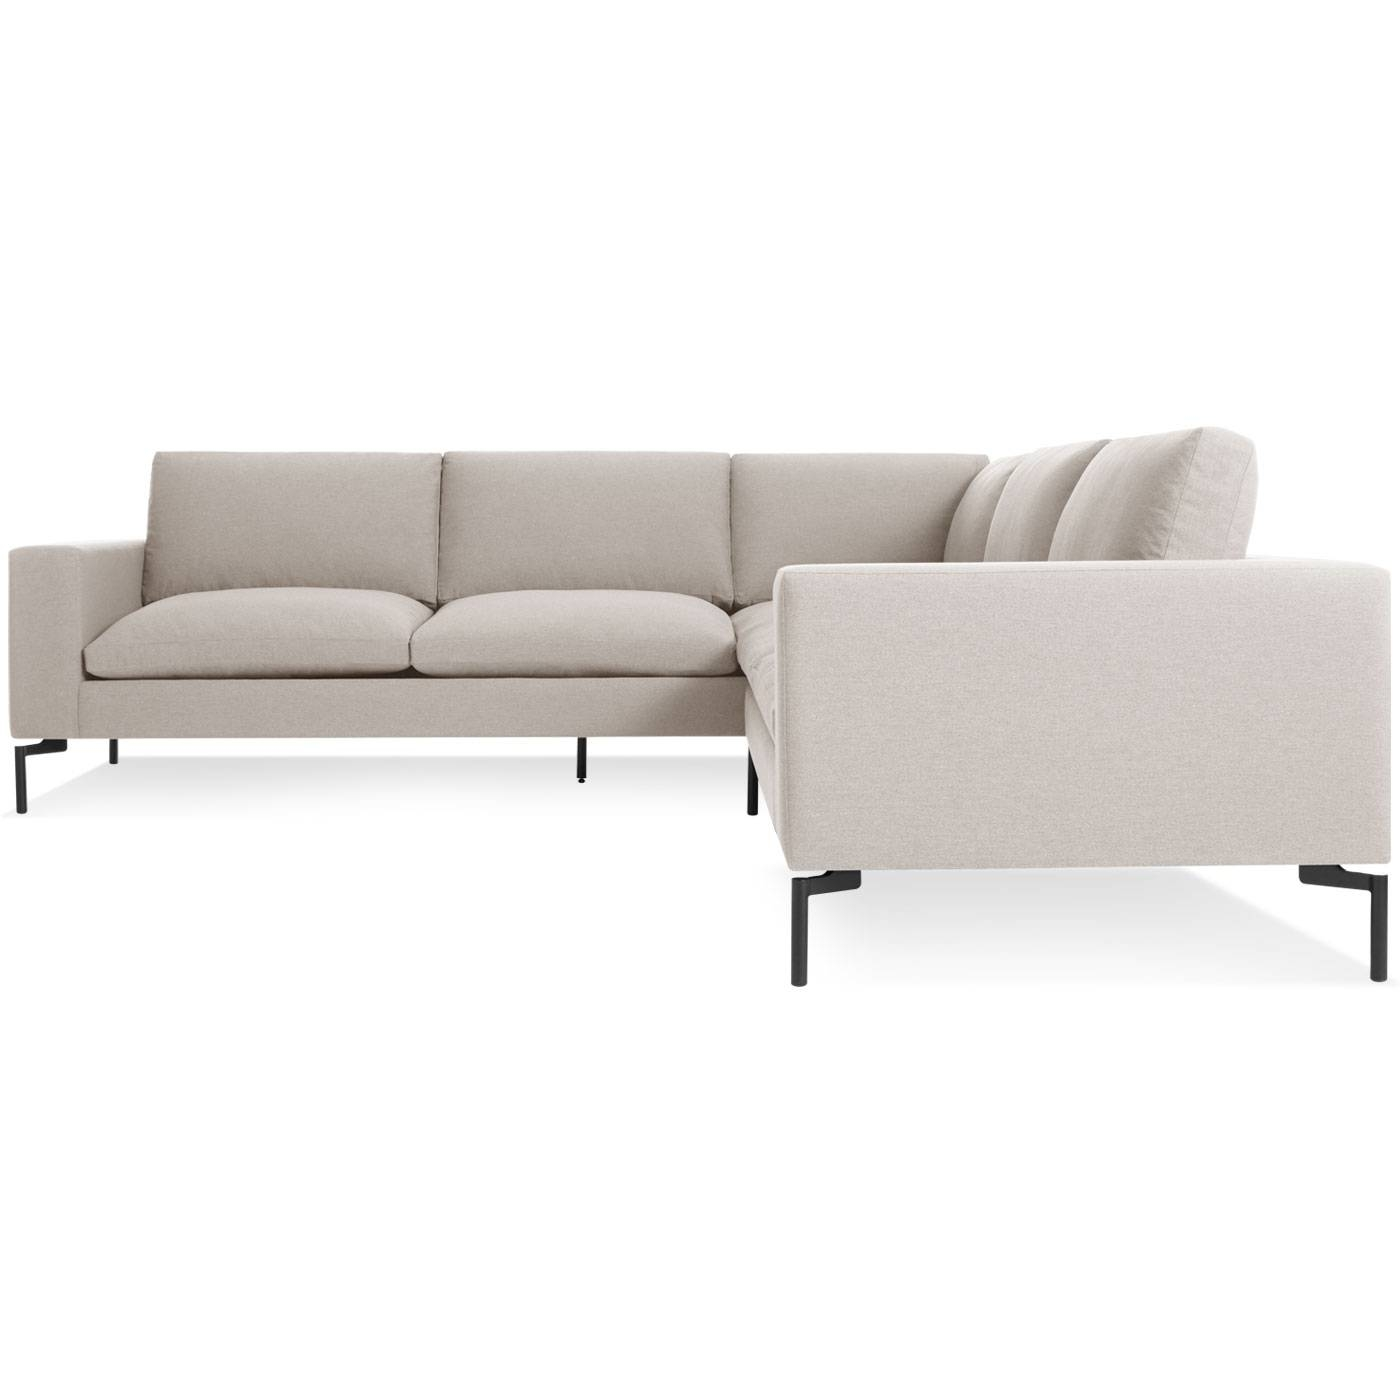 New Standard Small Sectional Sofa - Modern Sofas | Blu Dot throughout Modern Small Sectional Sofas (Image 10 of 15)